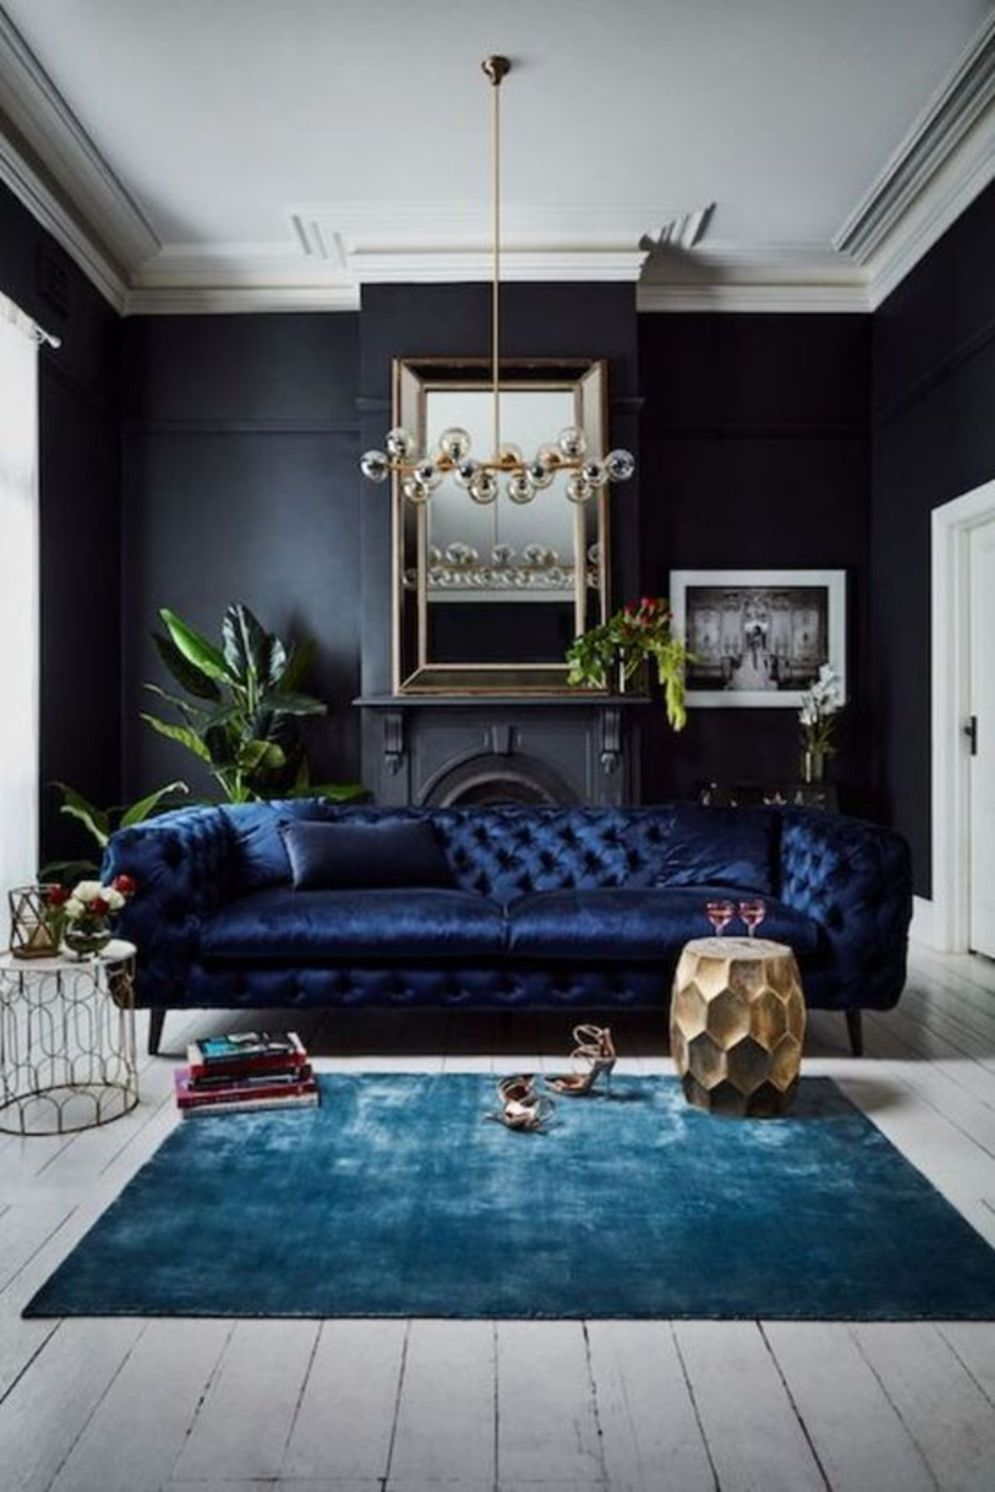 Expressive interior display in multilayering textures and colors showing artsy interior schemes with retro and vintage accents Image 11